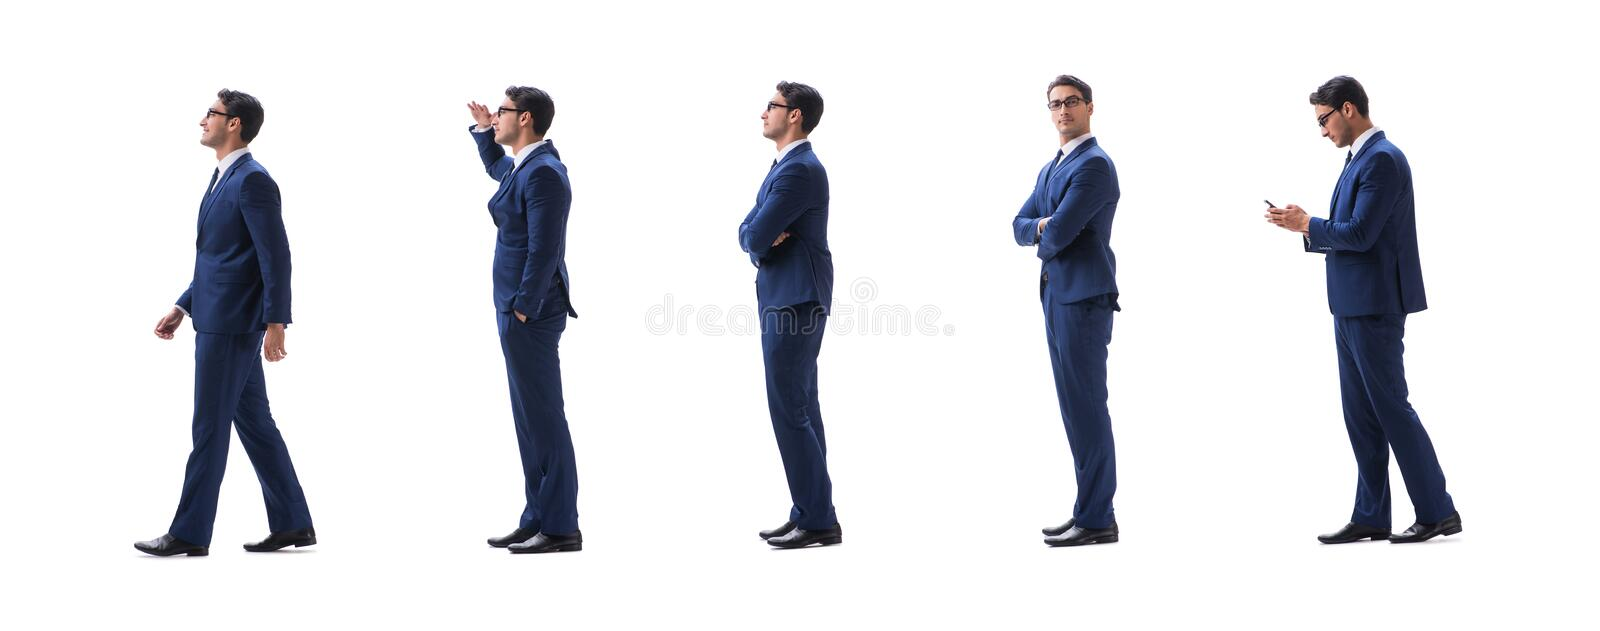 Businessman walking standing side view isolated on white backgro stock photo